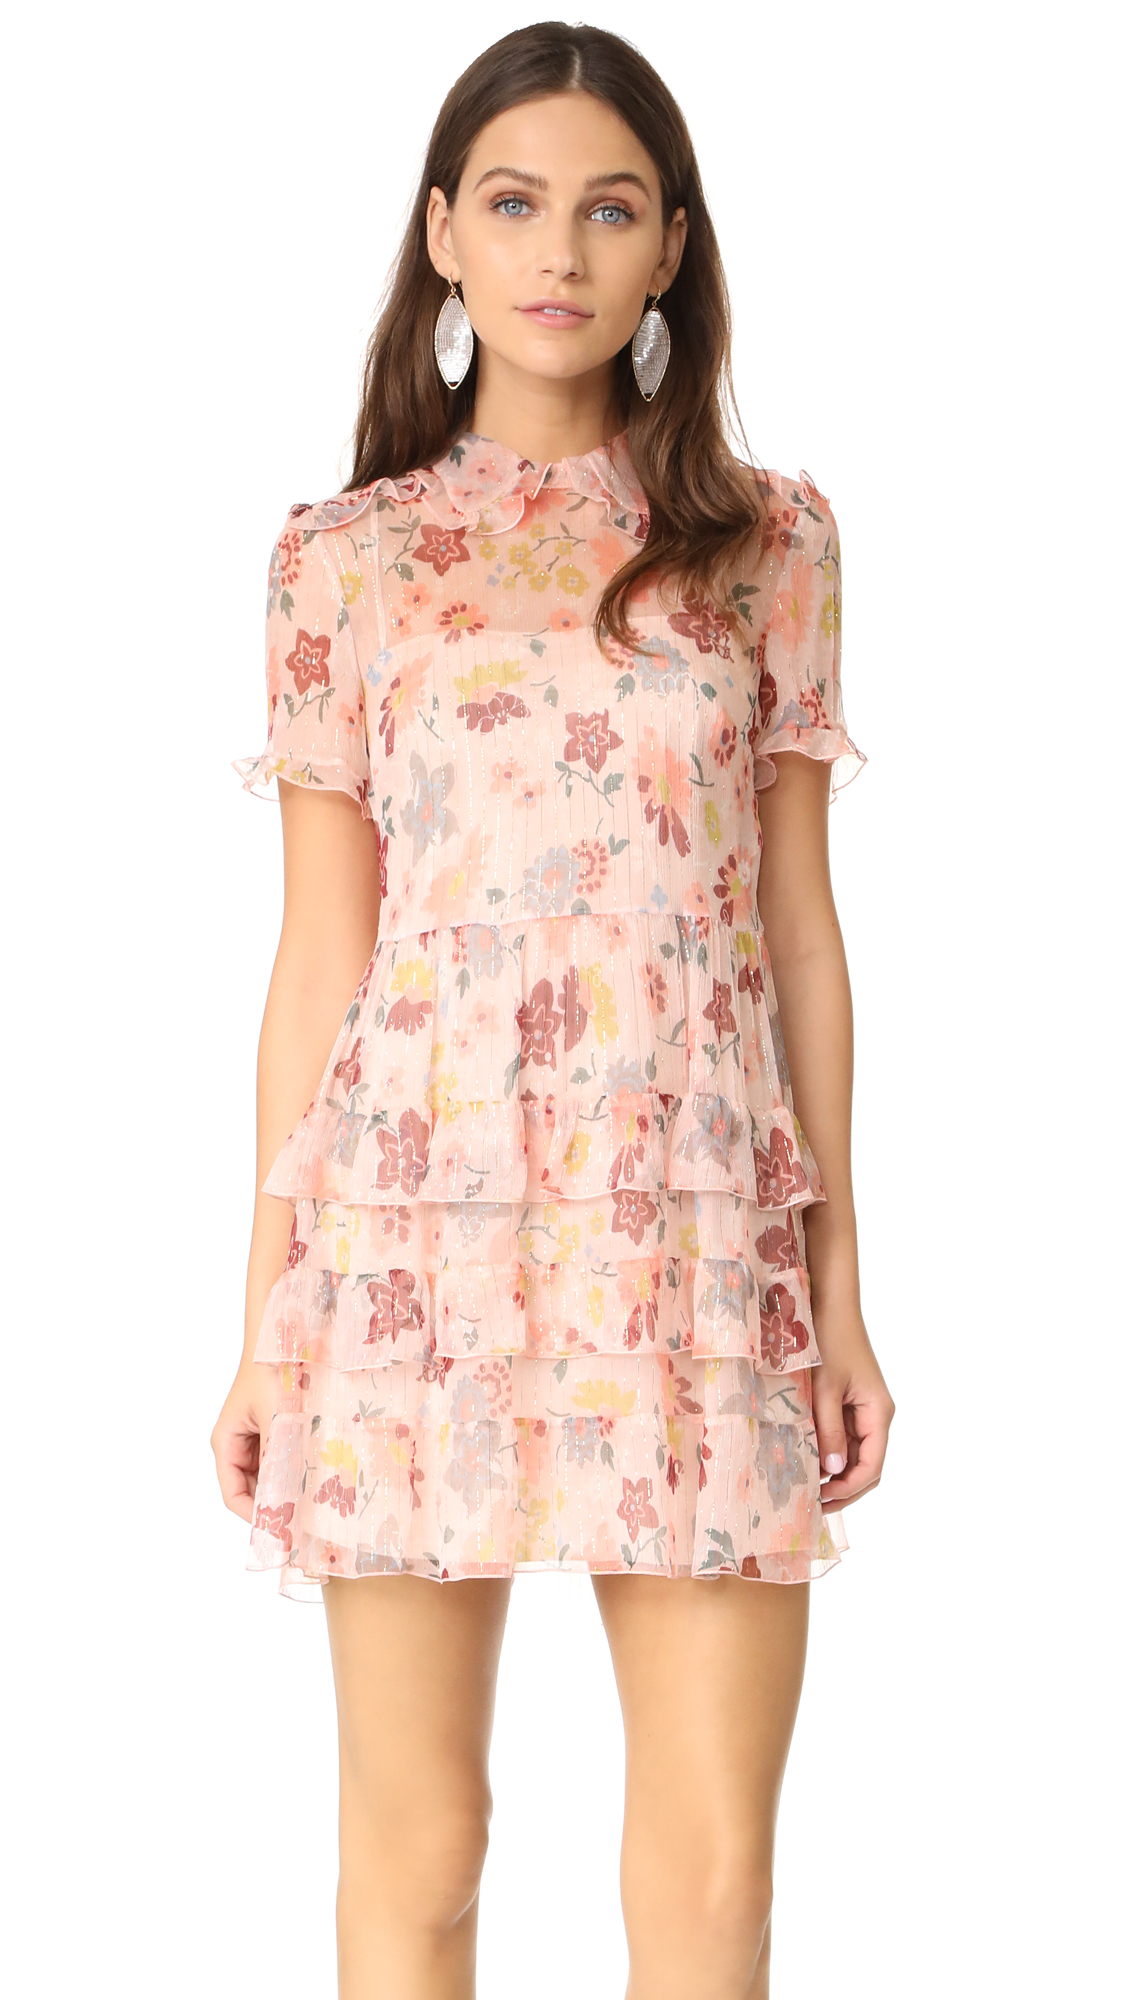 RED Valentino Collared Ruffle Dress - Nude